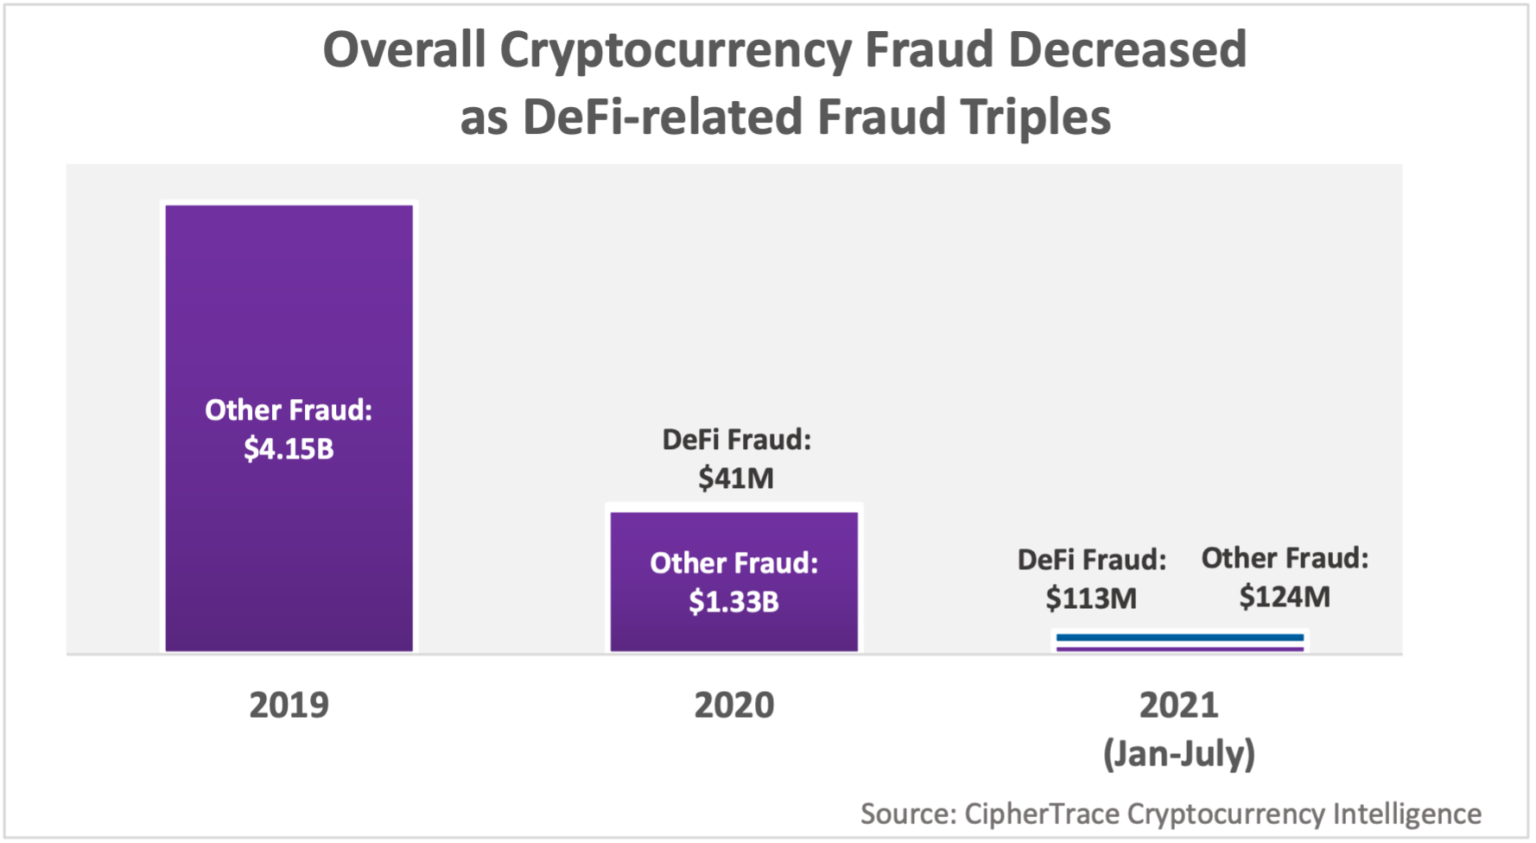 Crypto fraud, Source- Cryptocurrency Crime and Anti-Money Laundering Report, August 2021, Ciphertrace